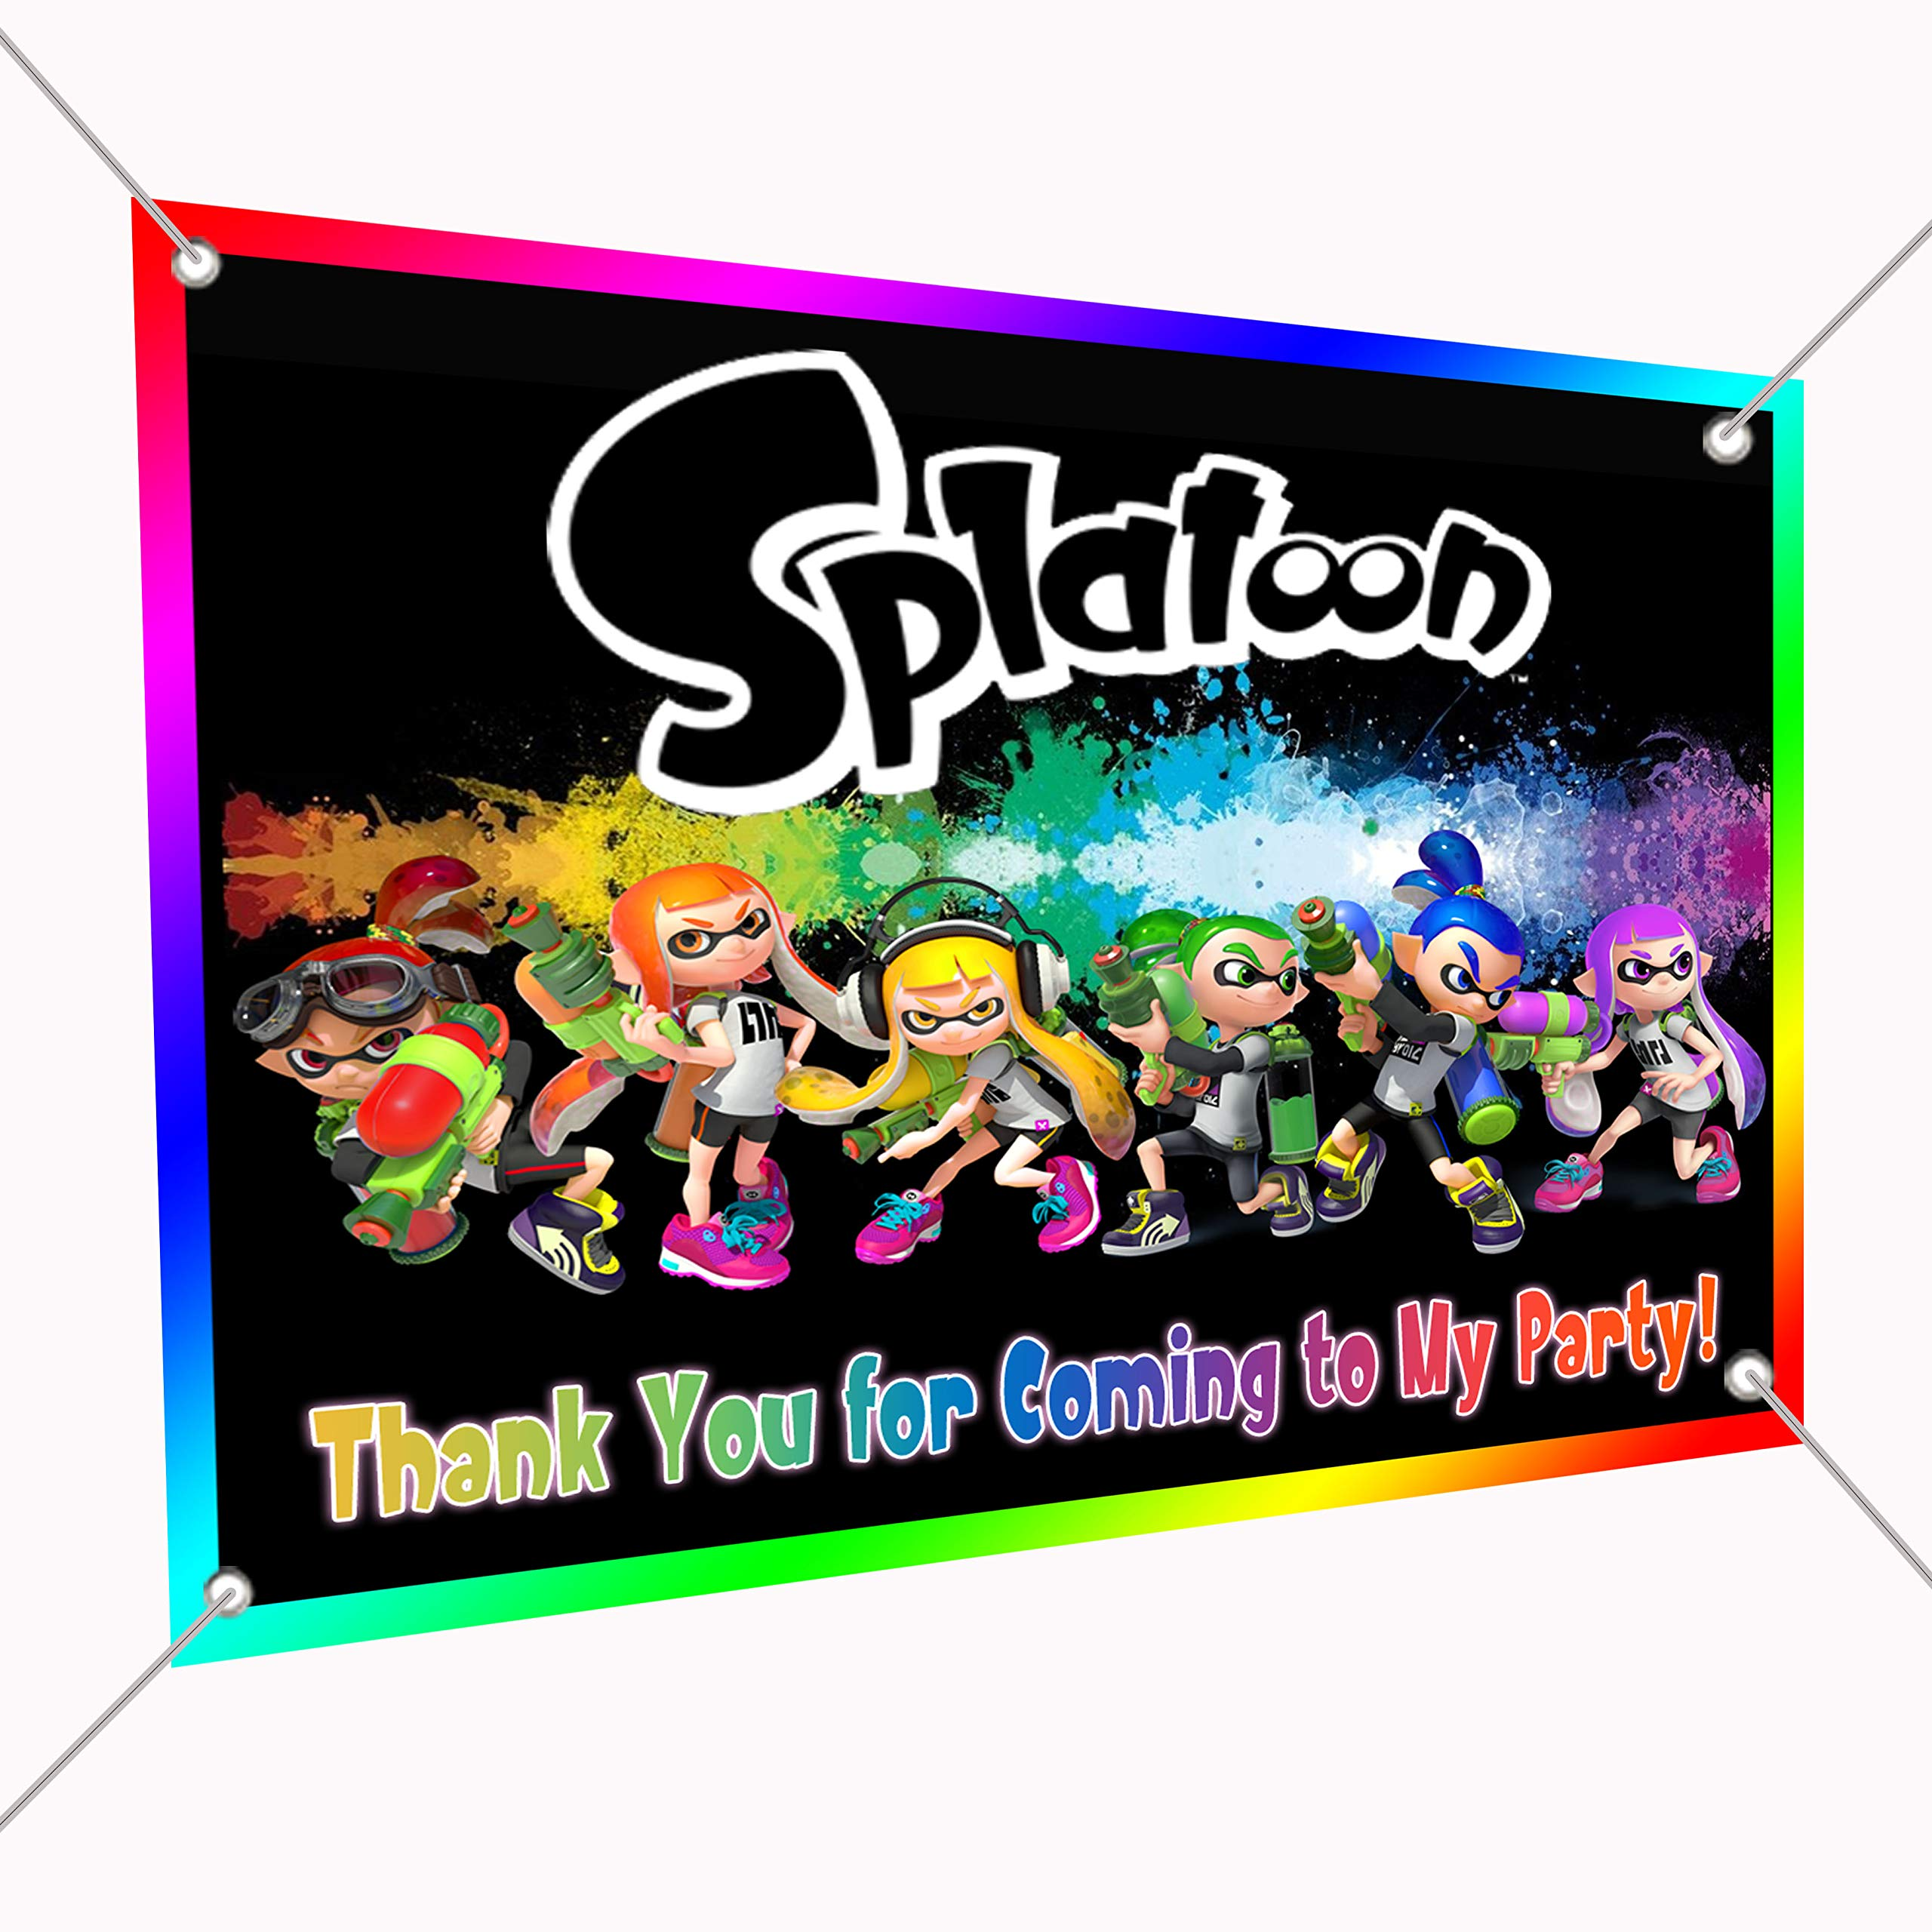 Splatoon Banner Video Game Large Vinyl Indoor or Outdoor Banner Sign Poster Backdrop, Party Favor Decoration, 30'' x 24'', 2.5' x 2', Video Game Truck Party Inklings Squid Sisters Paintball Shooter